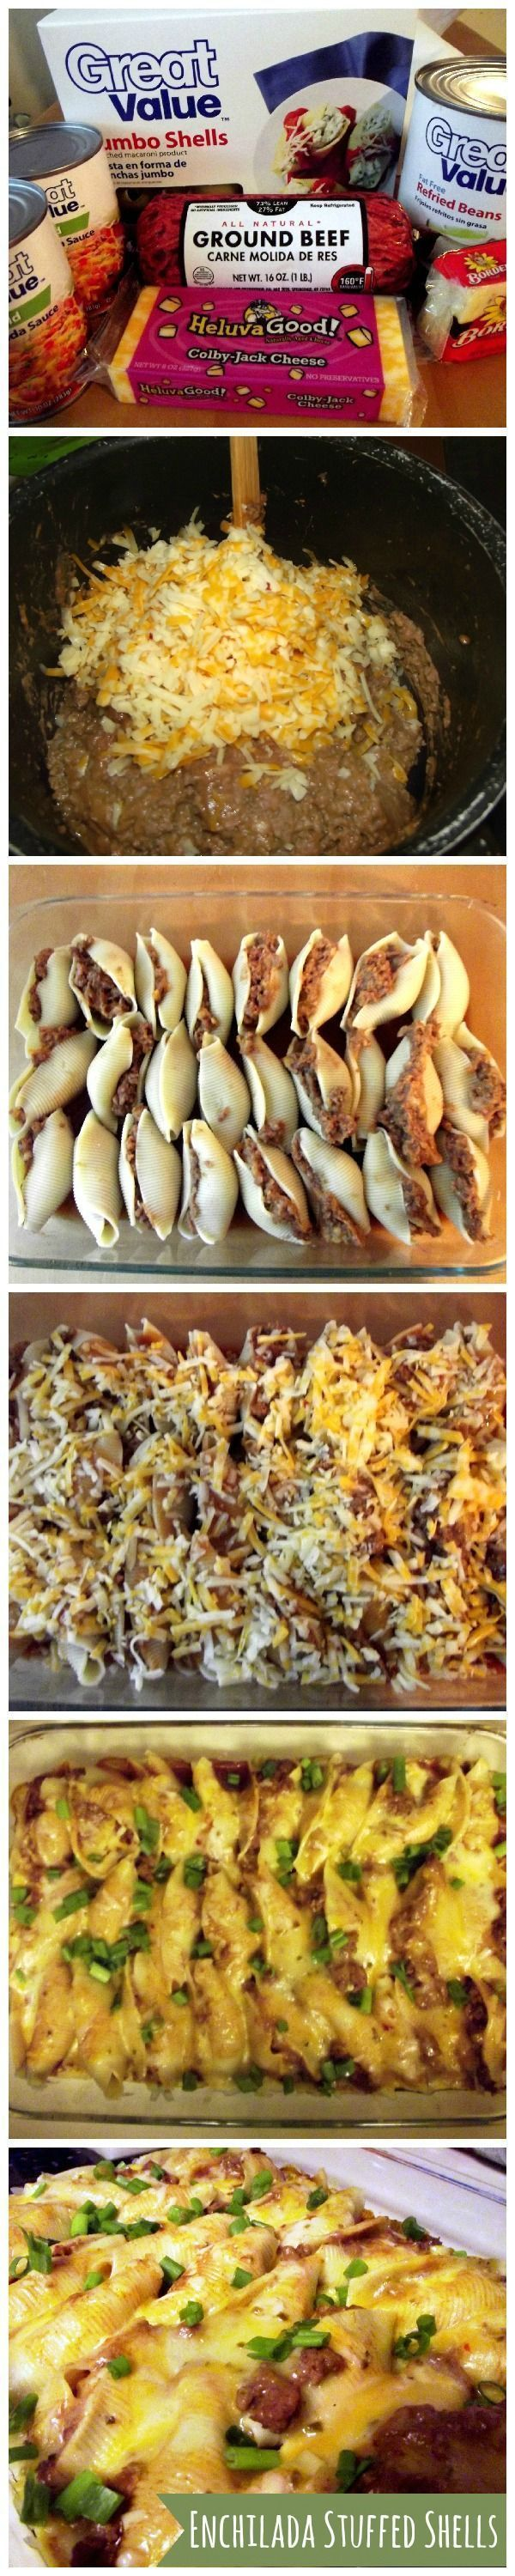 Enchilada Stuffed Shells One of my most pinned recipes!! Try it for yourself and see why everyone goes crazy for this easy dinner!